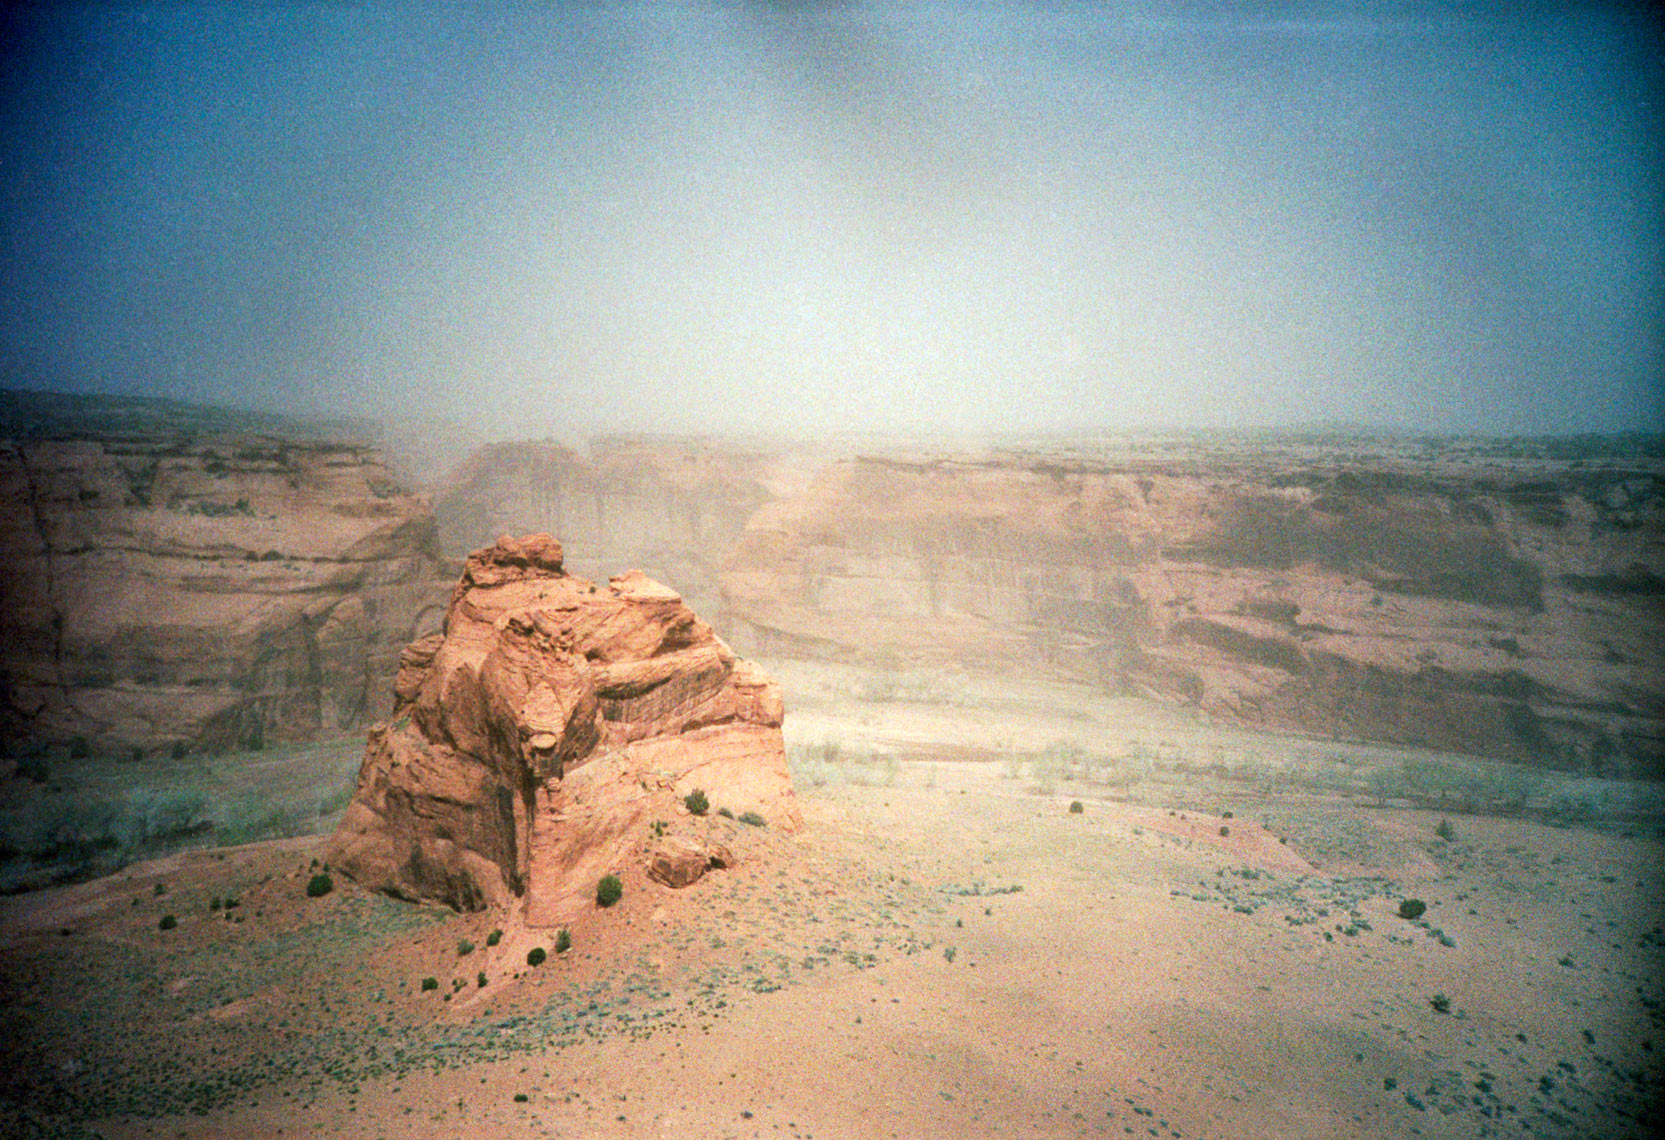 sand storm on Navaho Reservation near Canyon de Chelly Colorado Plateau